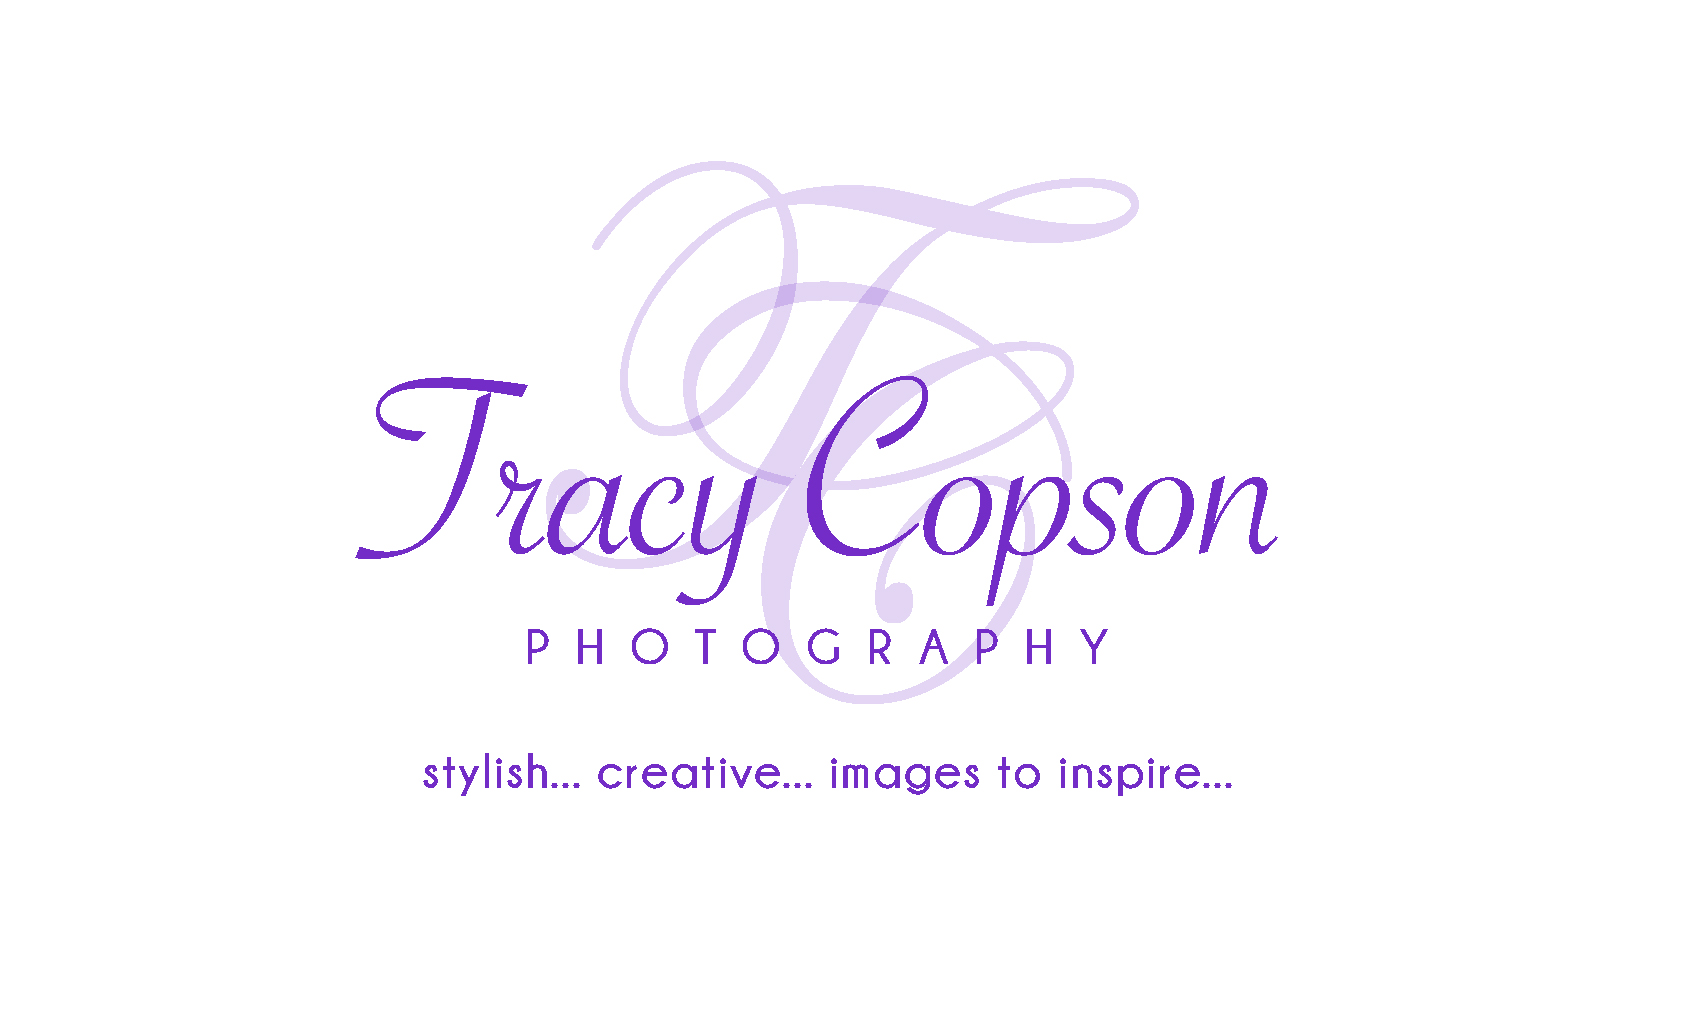 Tracy Copson Photography